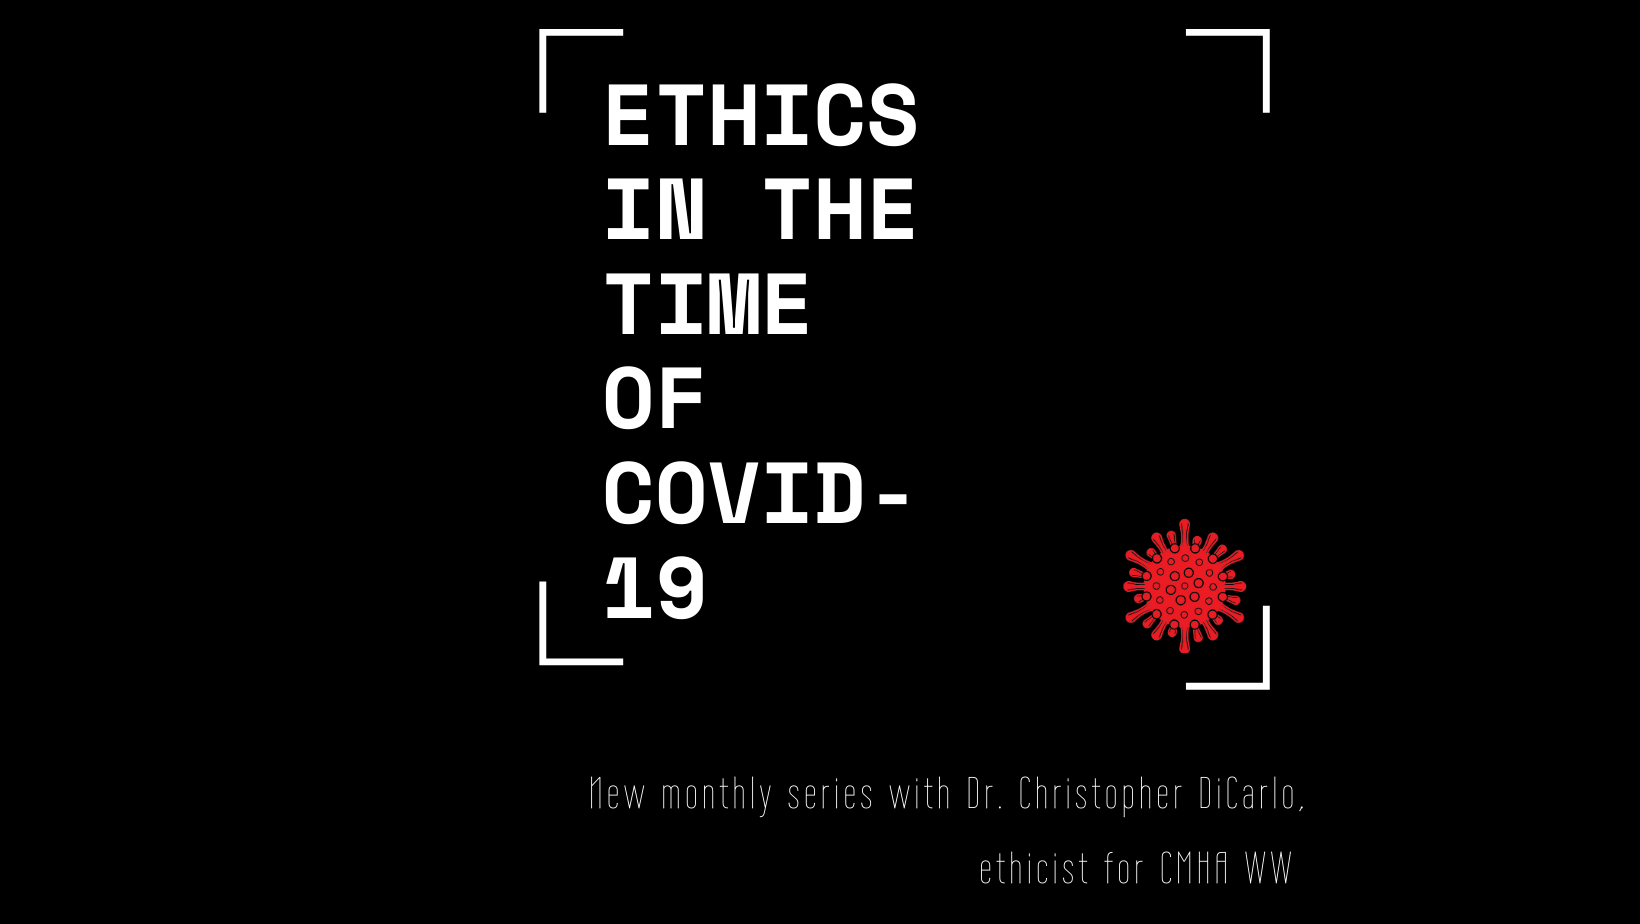 Ethics in the Time of COVID-19 webinar series